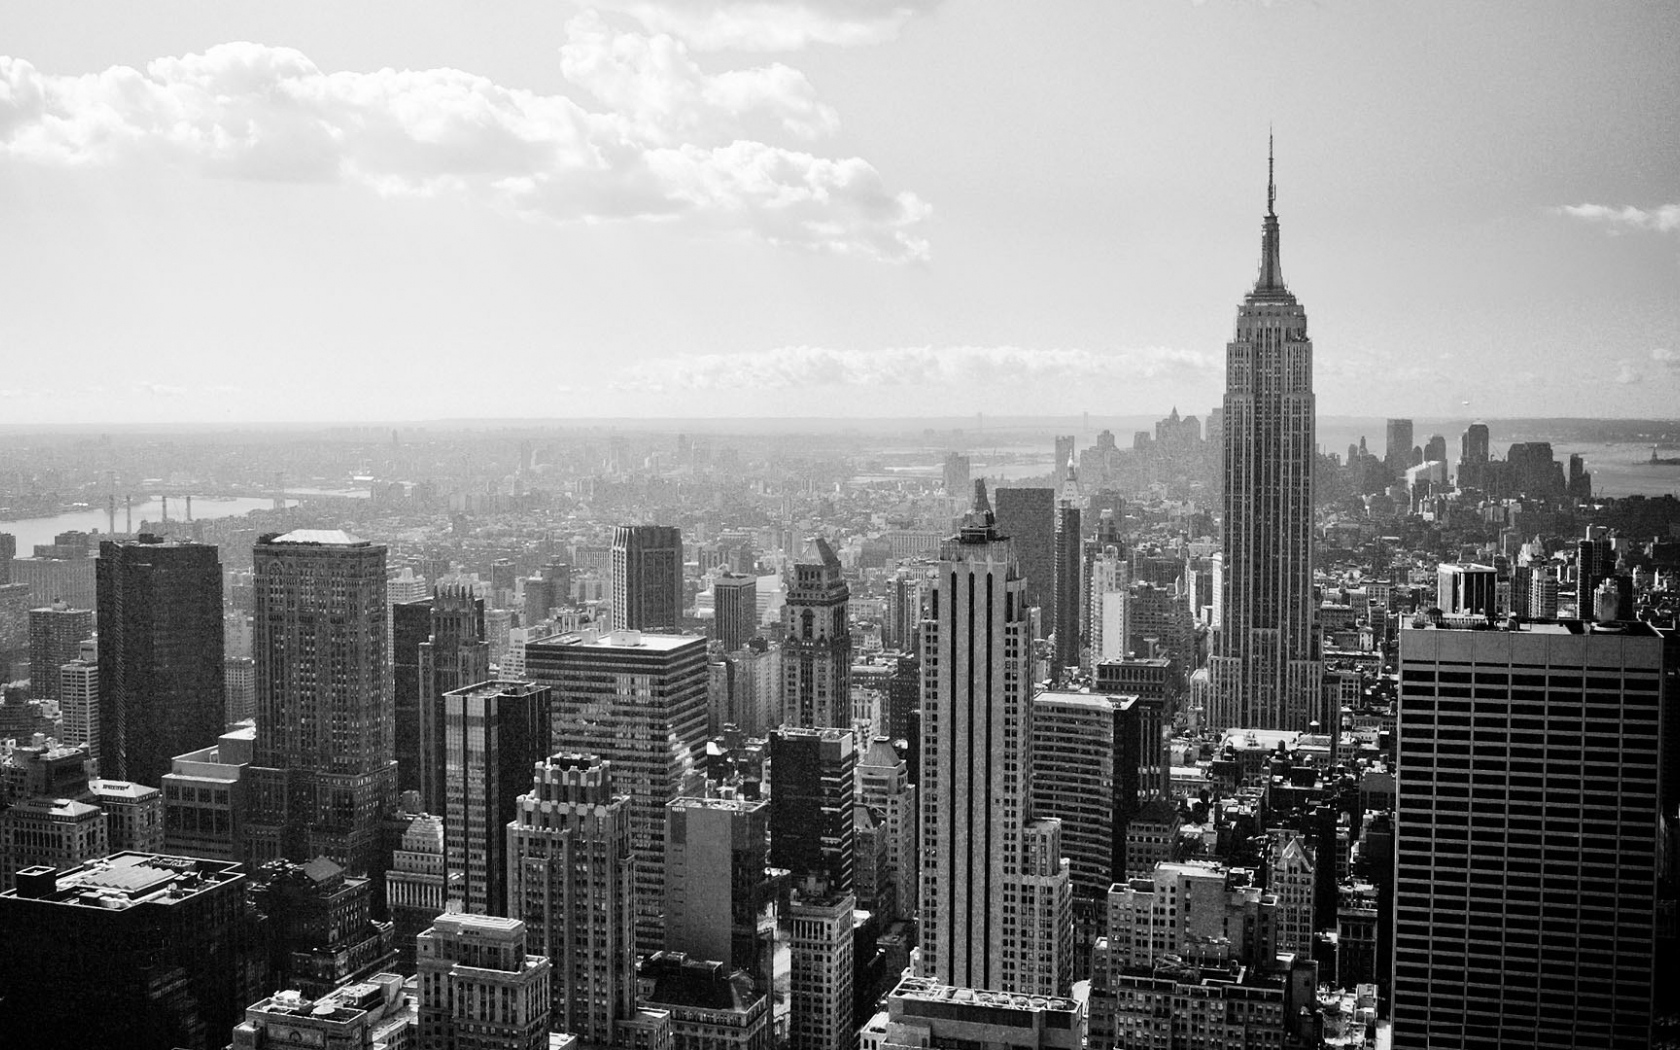 Free Download New York City Wallpaper Hd Images 4k High Definition